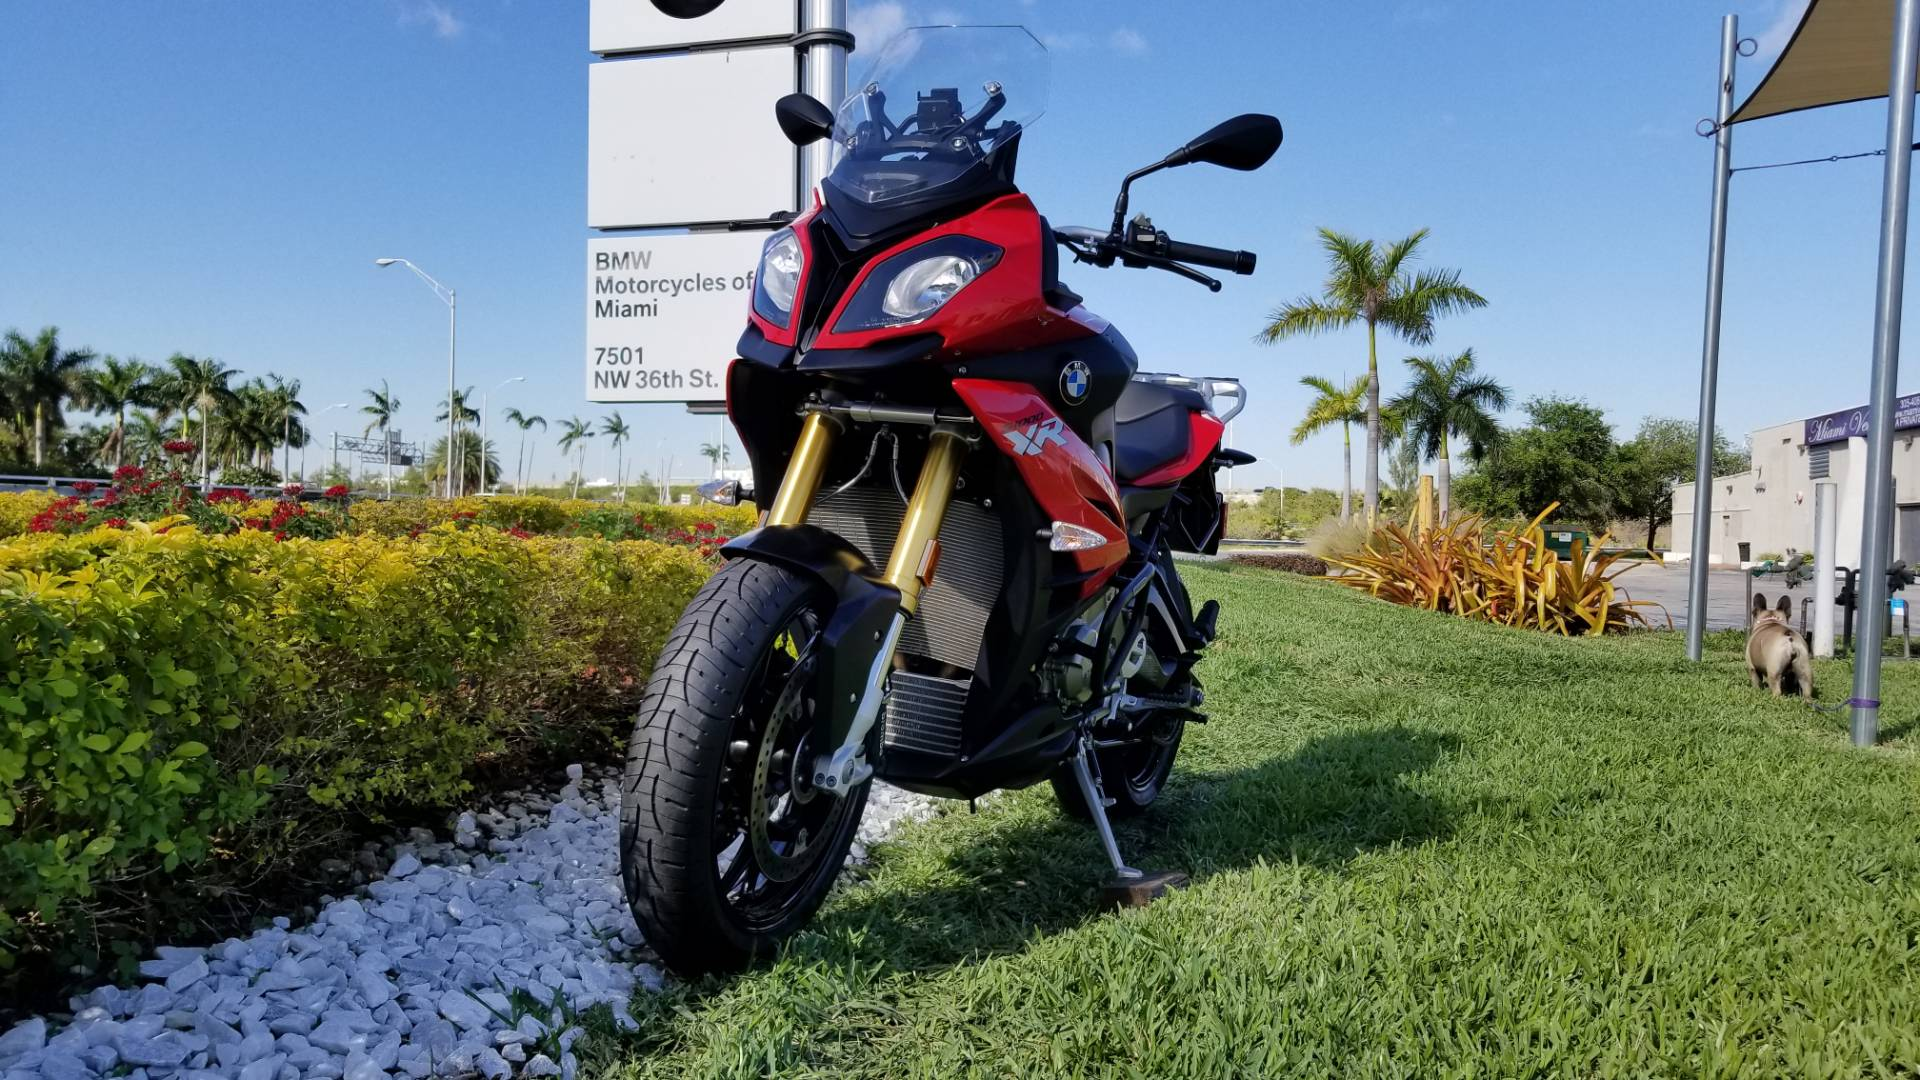 Used 2016 BMW S 1000 XR For Sale, Pre Owned BMW S 1000XR For Sale, Pre-Owned BMW Motorcycle S1000XR, BMW Motorcycle, S 1000 XR, DUAL, BMW - Photo 3